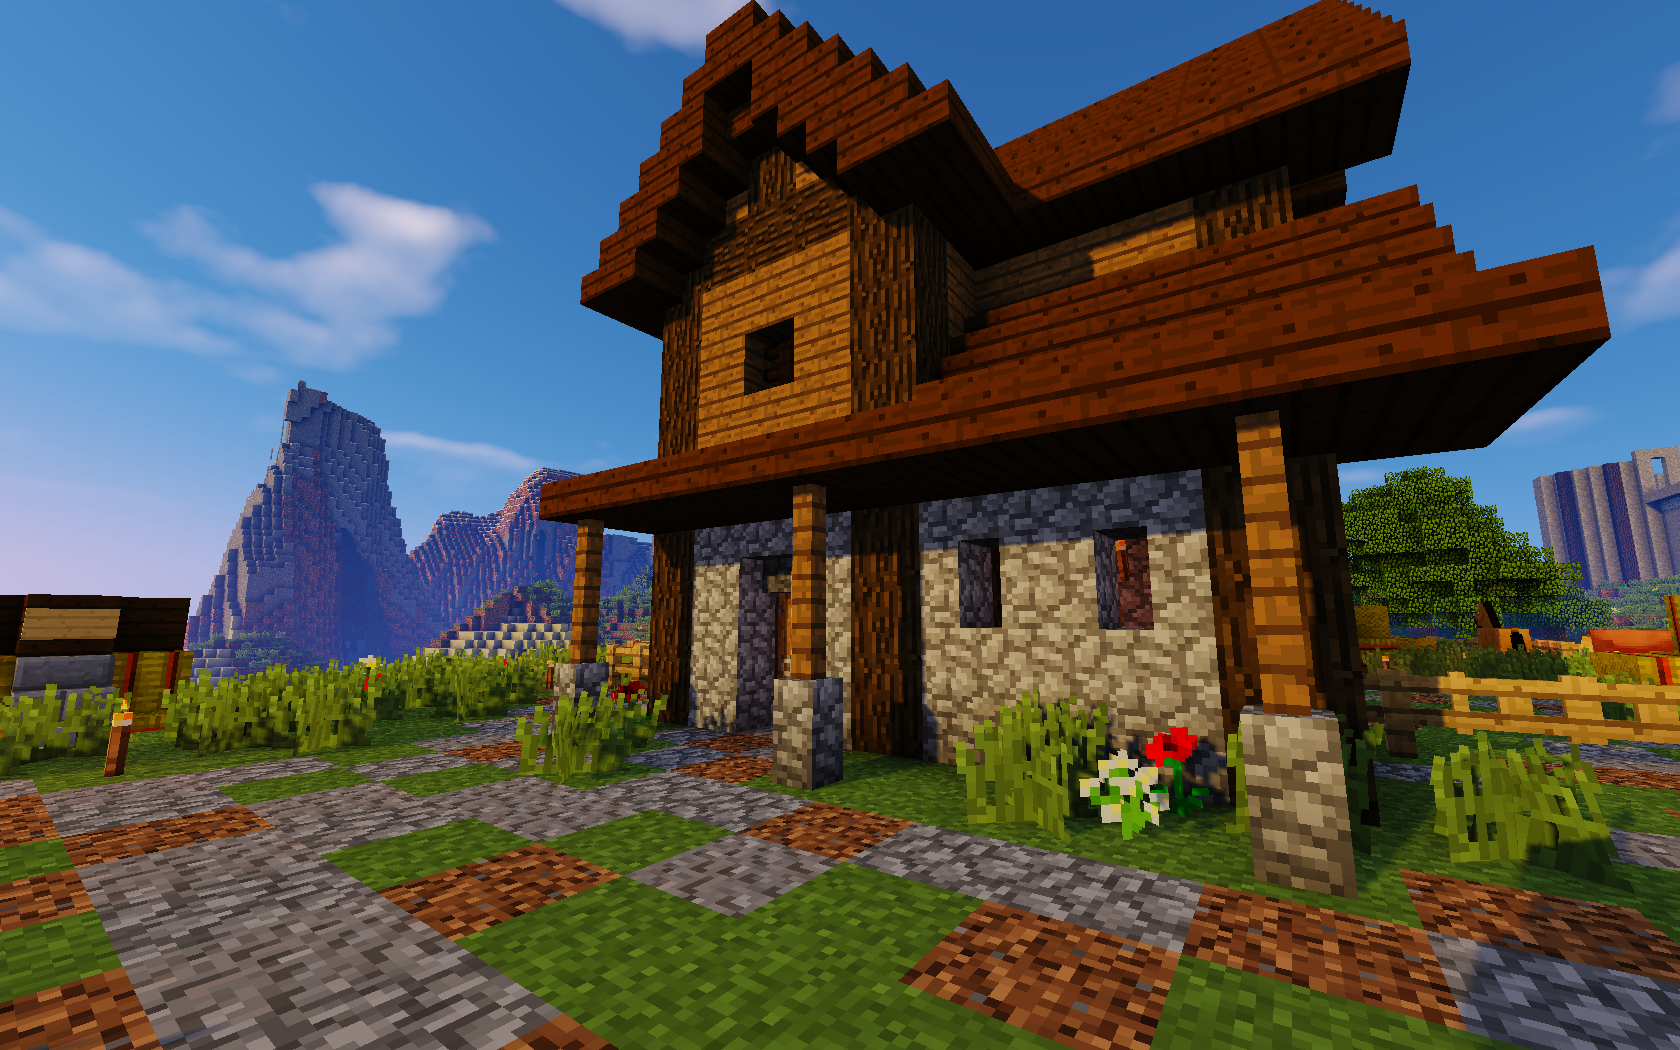 Minecraft Survival: Stable Home - Screenshots - Show Your ...